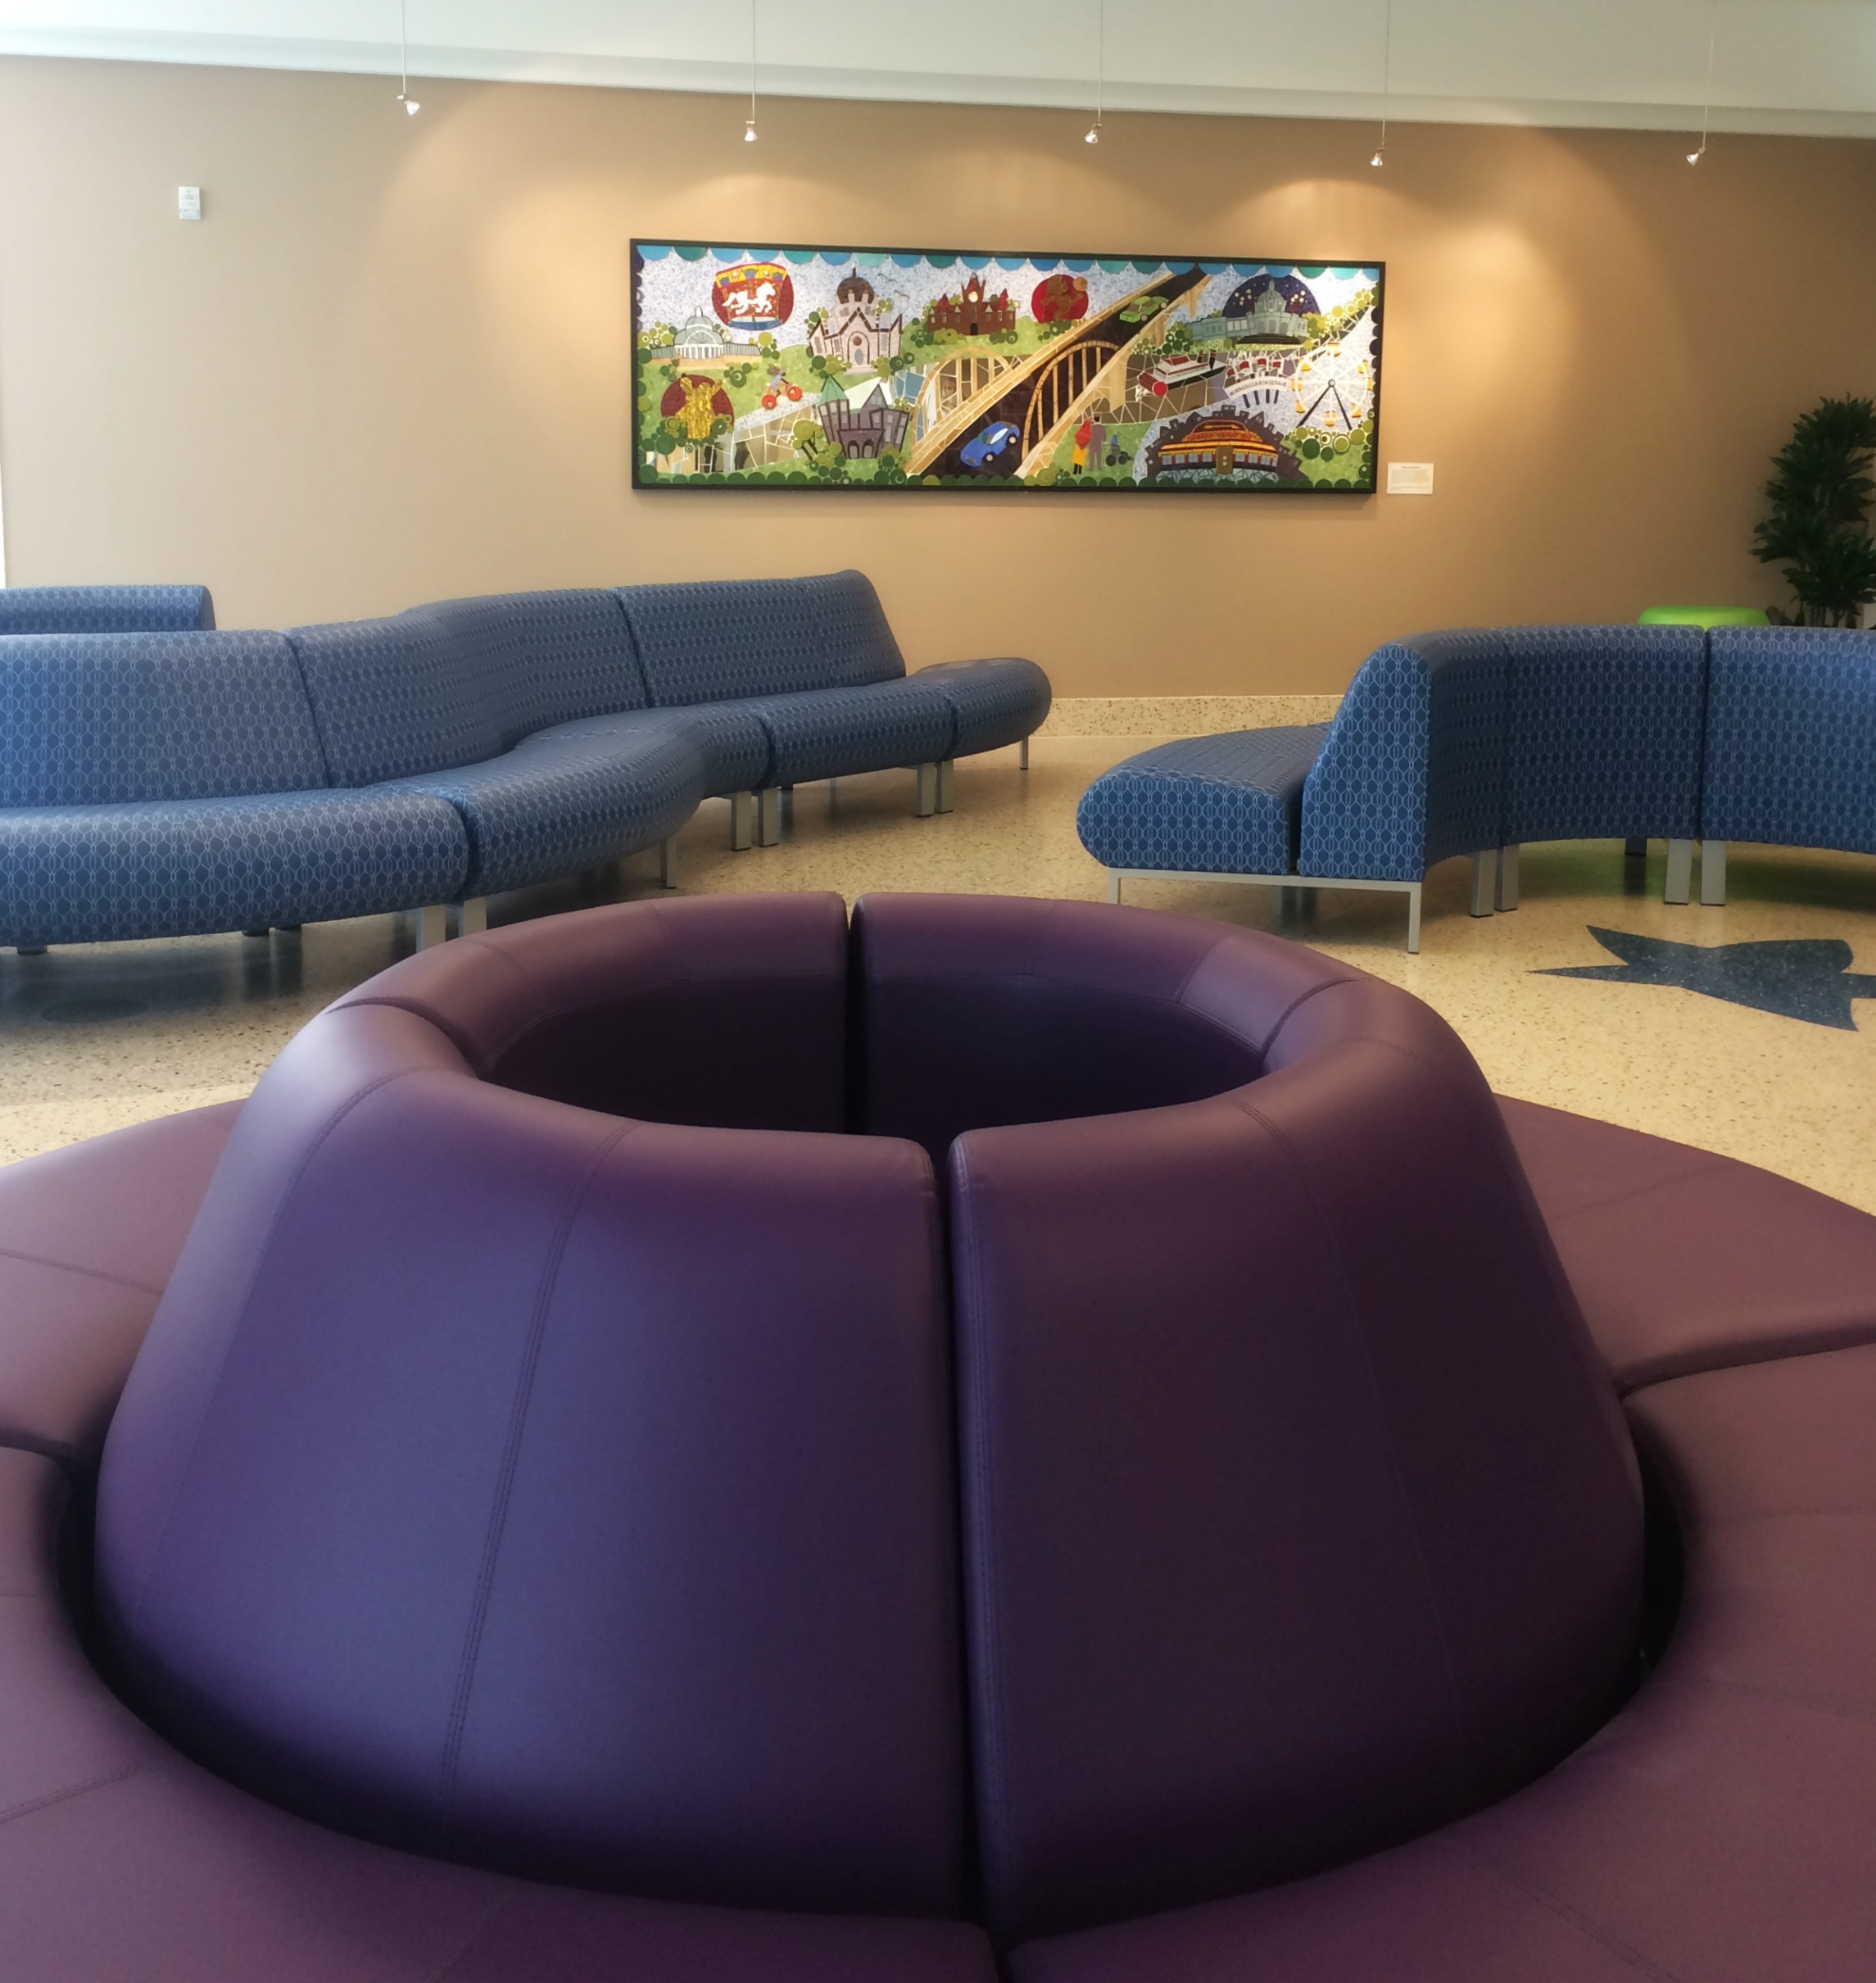 Radius Seating by Davis Furniture, at Children's Hospital and Clinics of Minnesota,